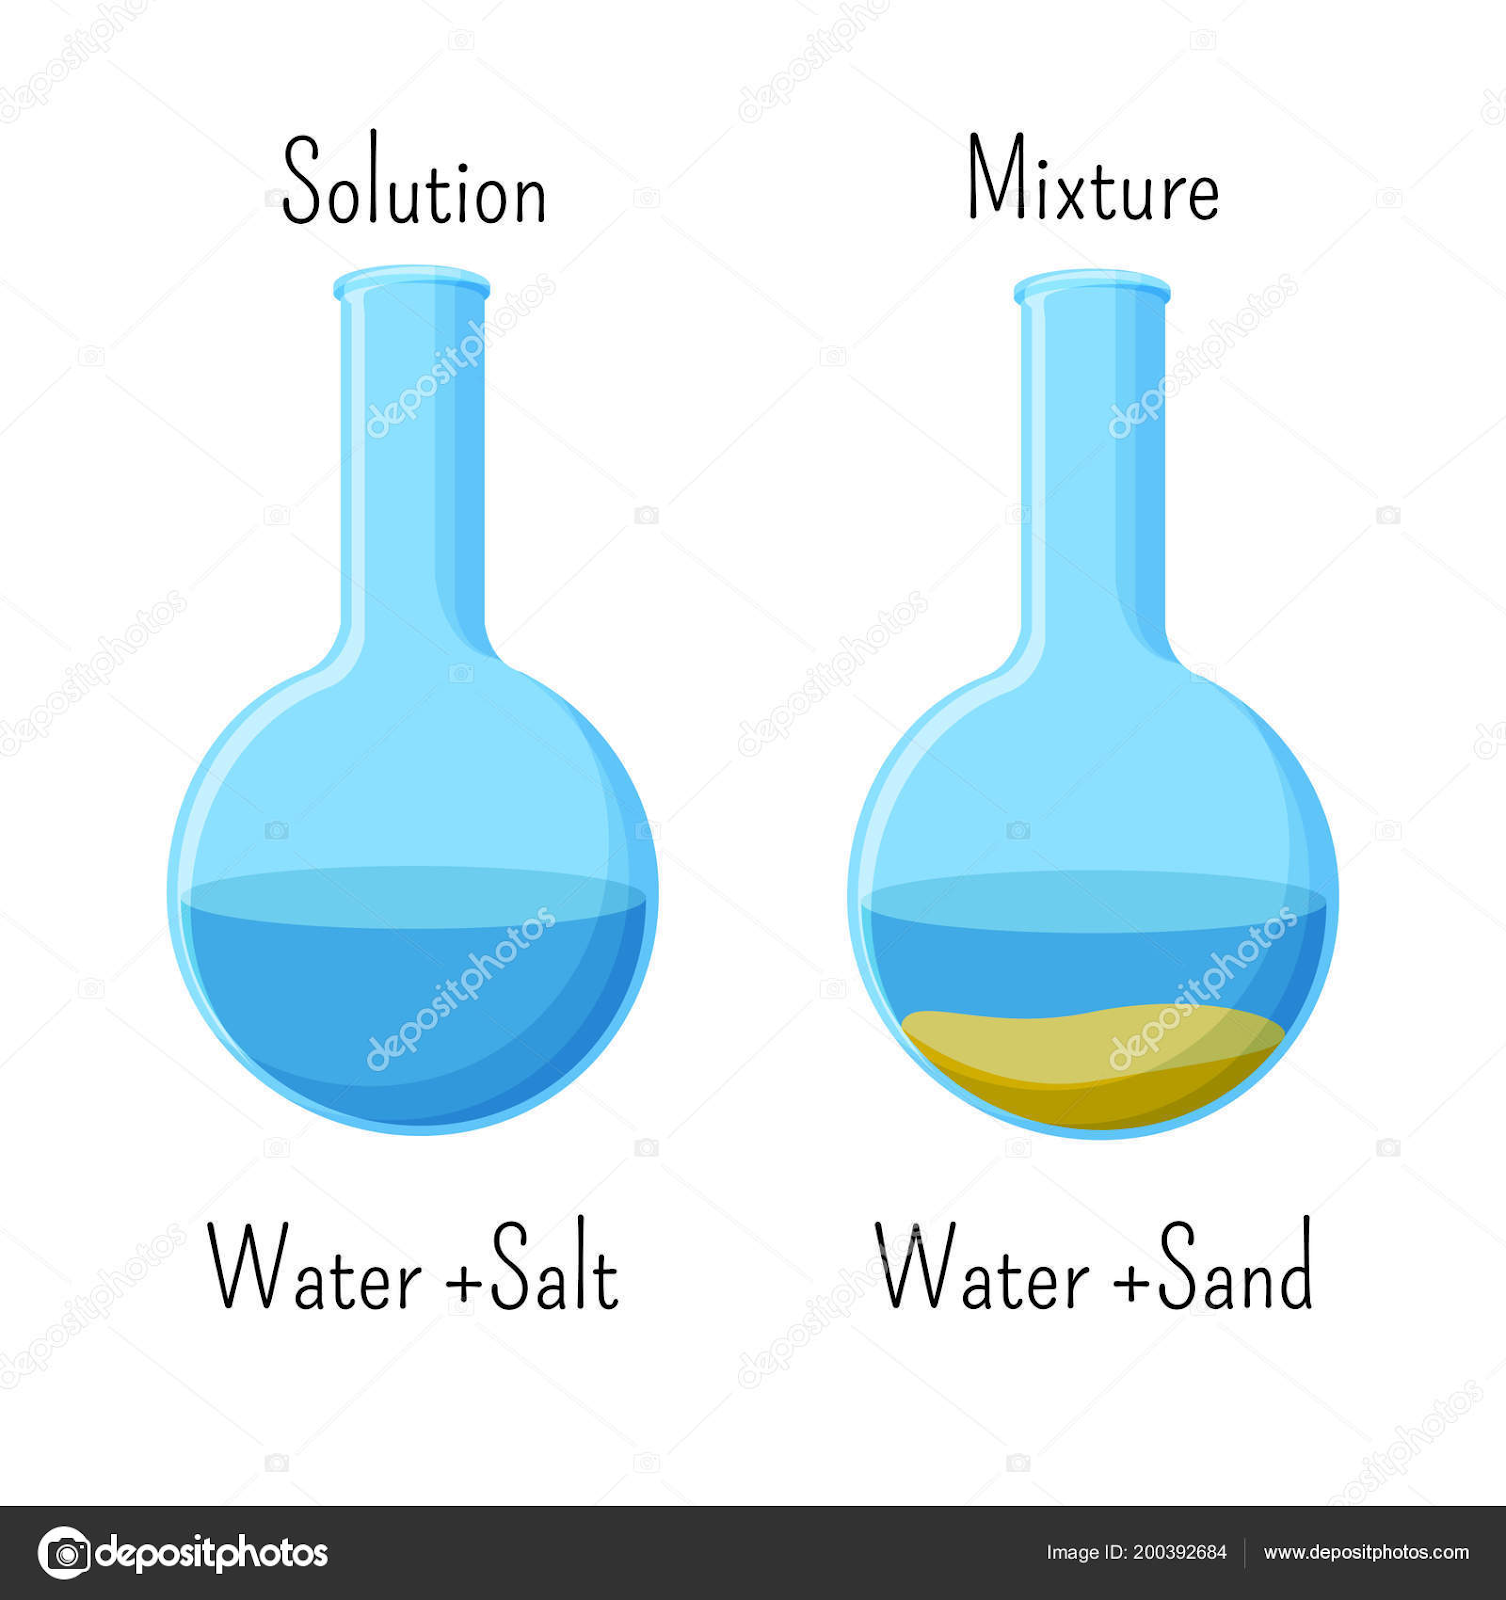 1st: Solutions and Mixtures